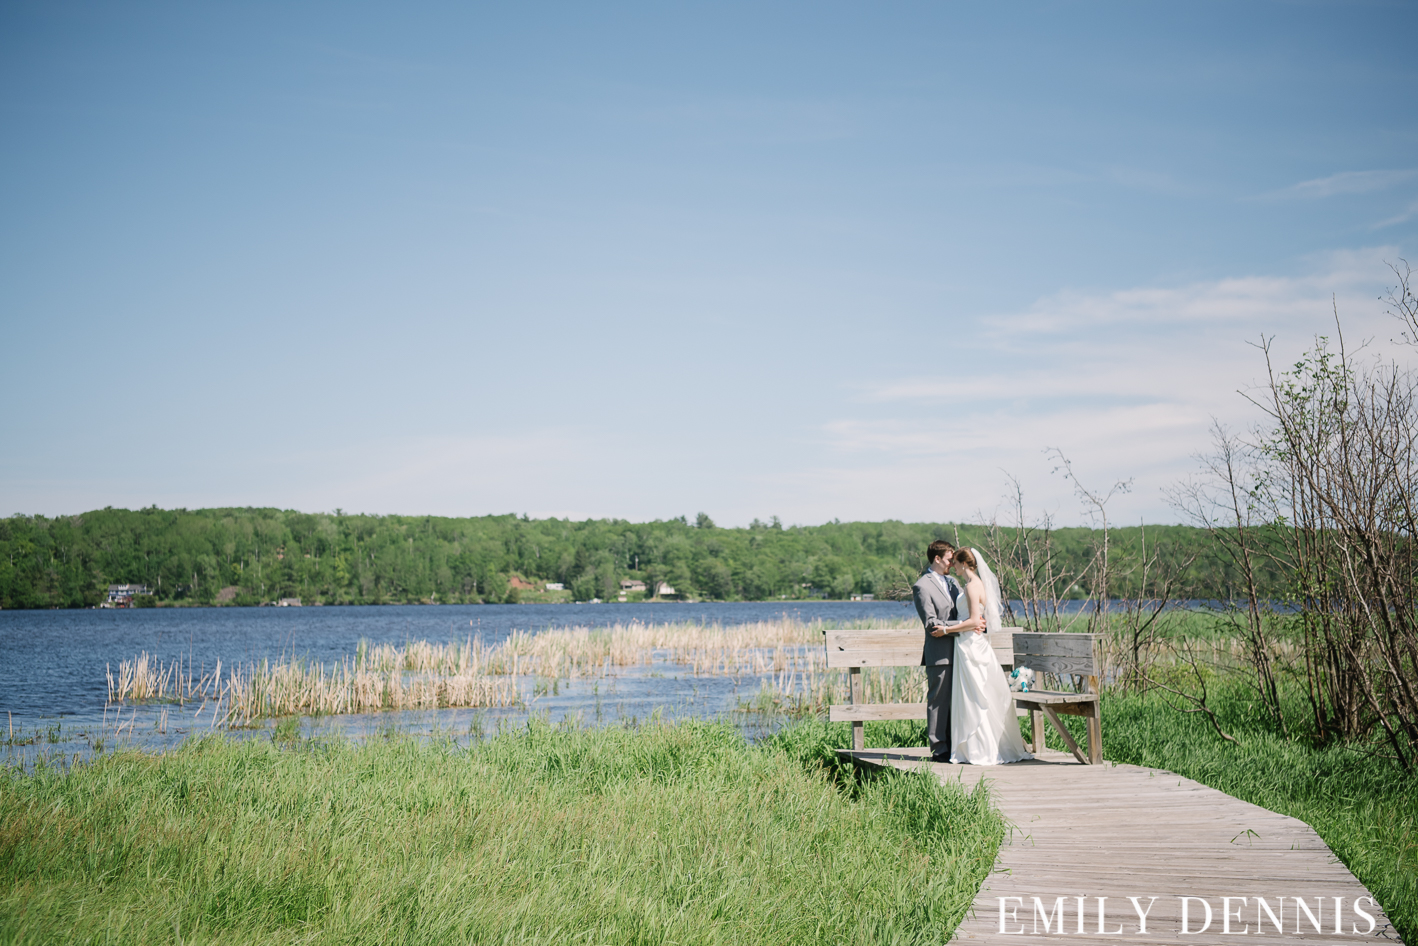 EMILY_DENNIS_PHOTOGRAPHY-76